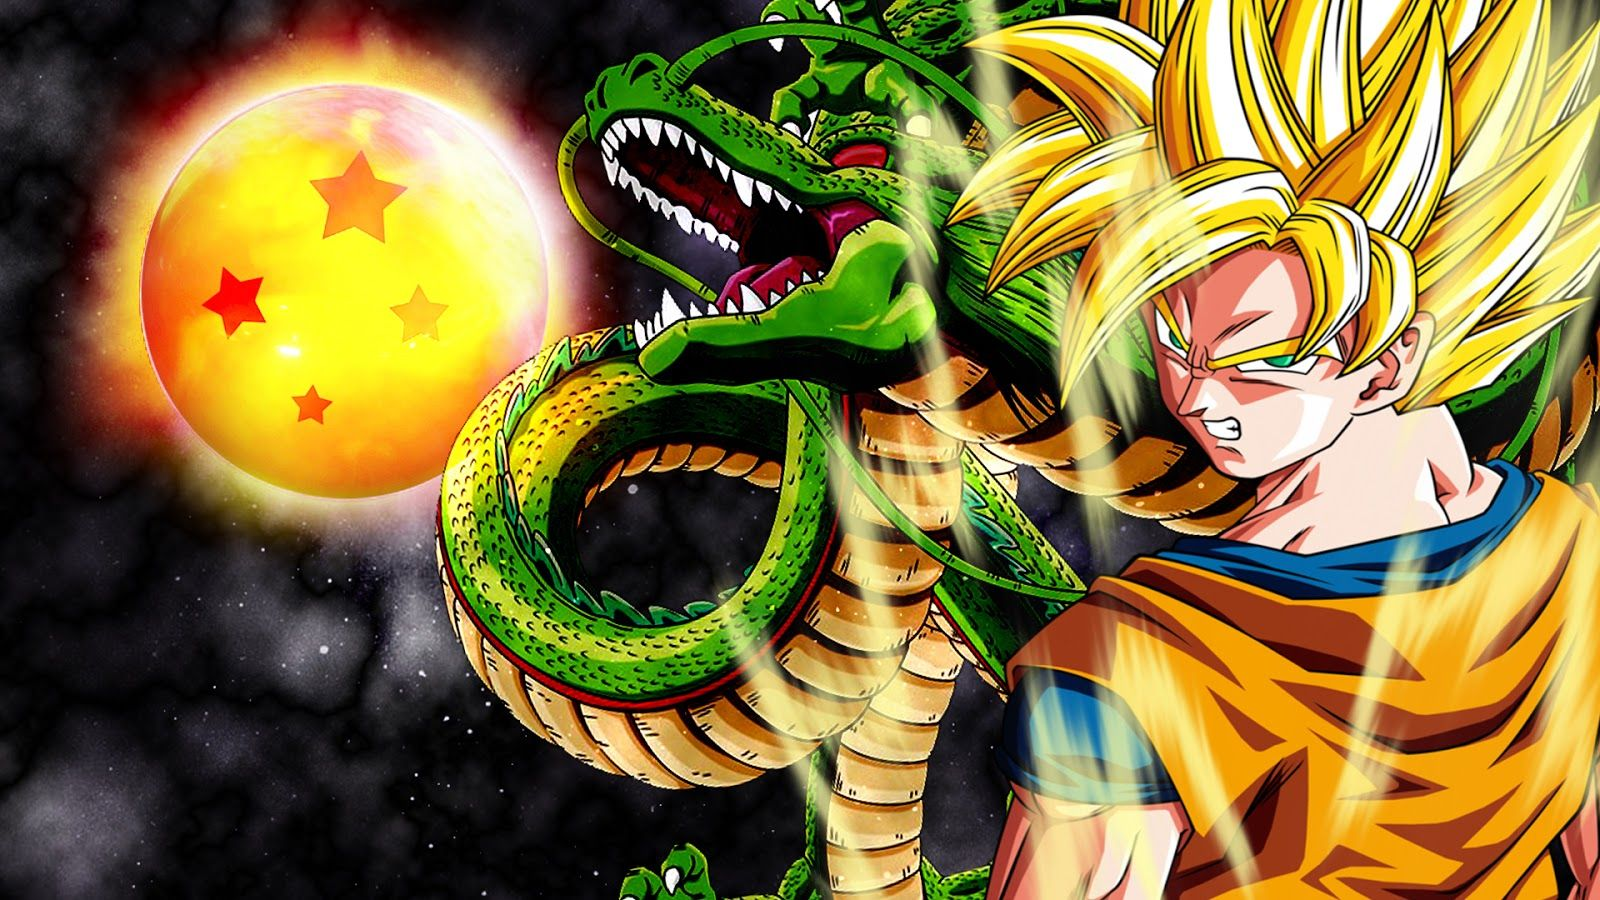 dragon ball z wallpapers high quality download free | hd wallpapers